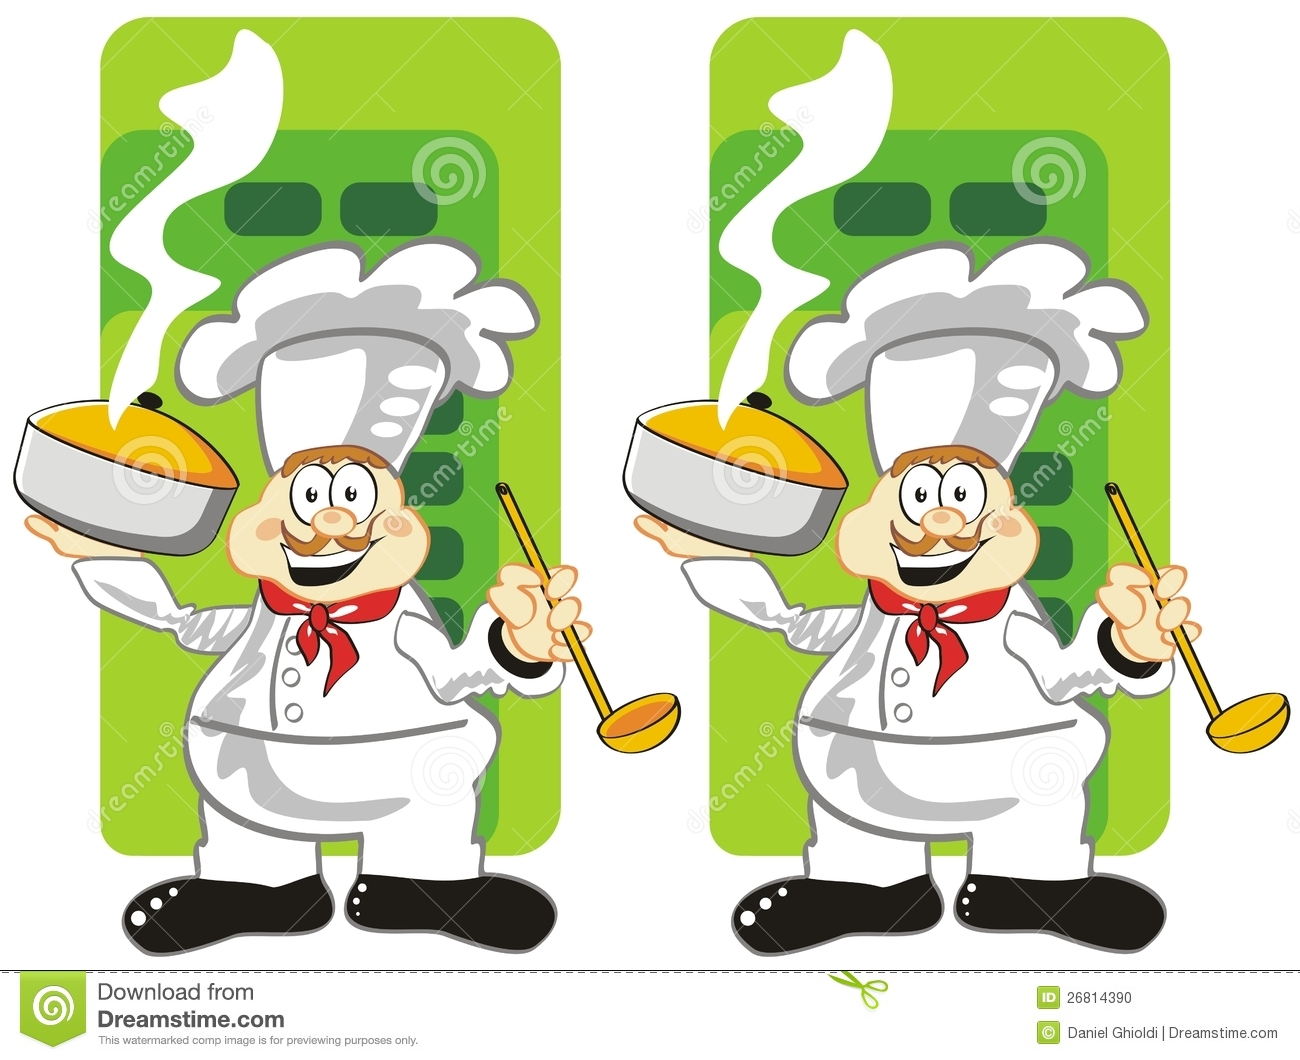 Game for children's: spot the 7 differences between these two cooks.